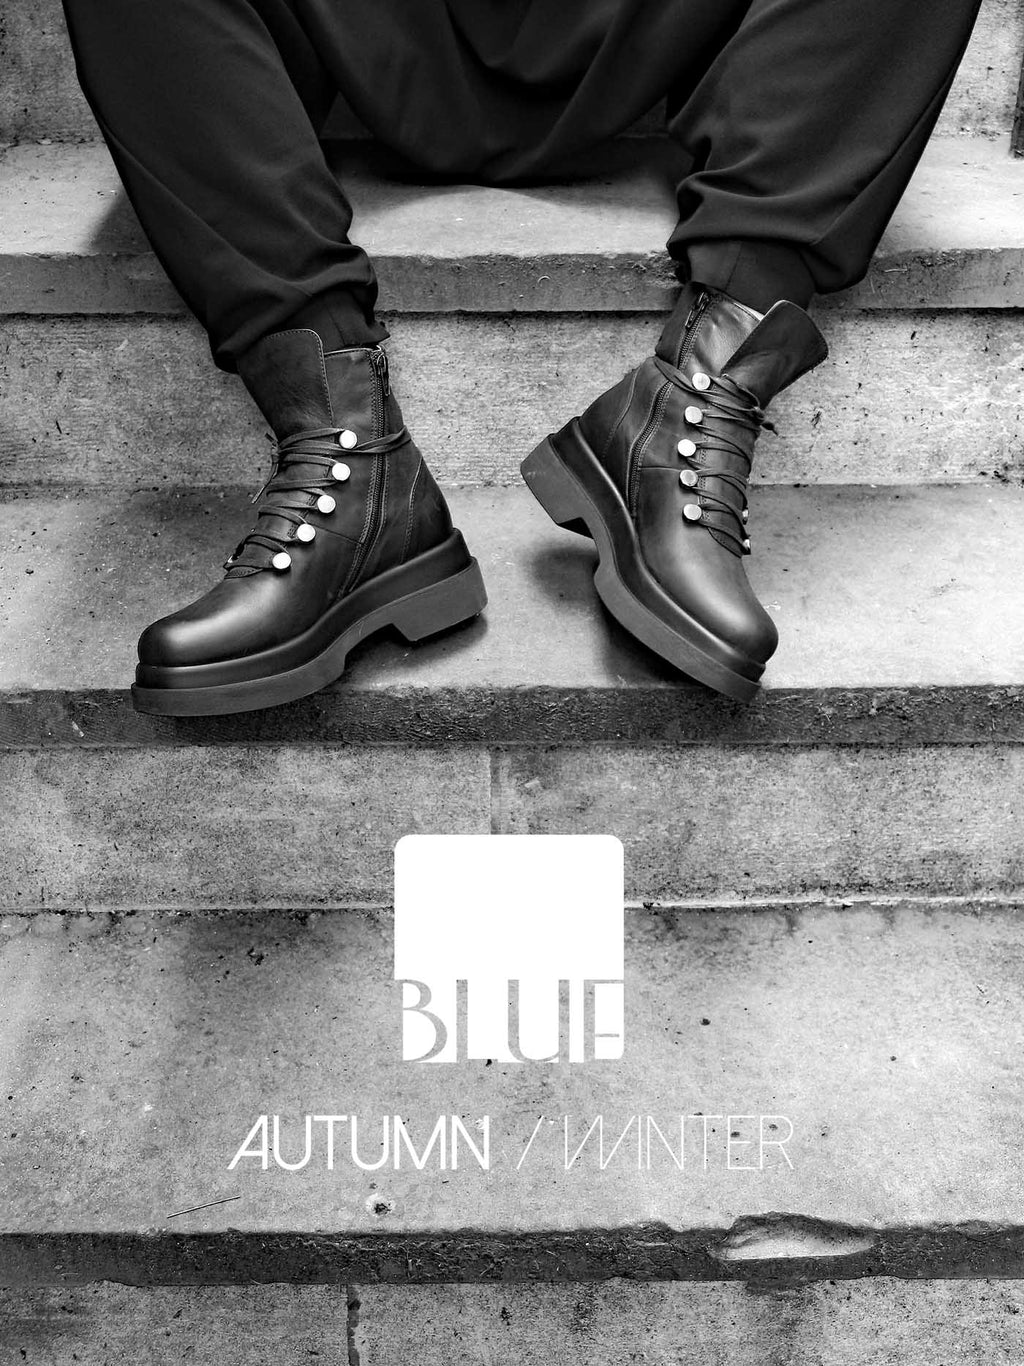 New Lofina Boots at Blue UK in store and online